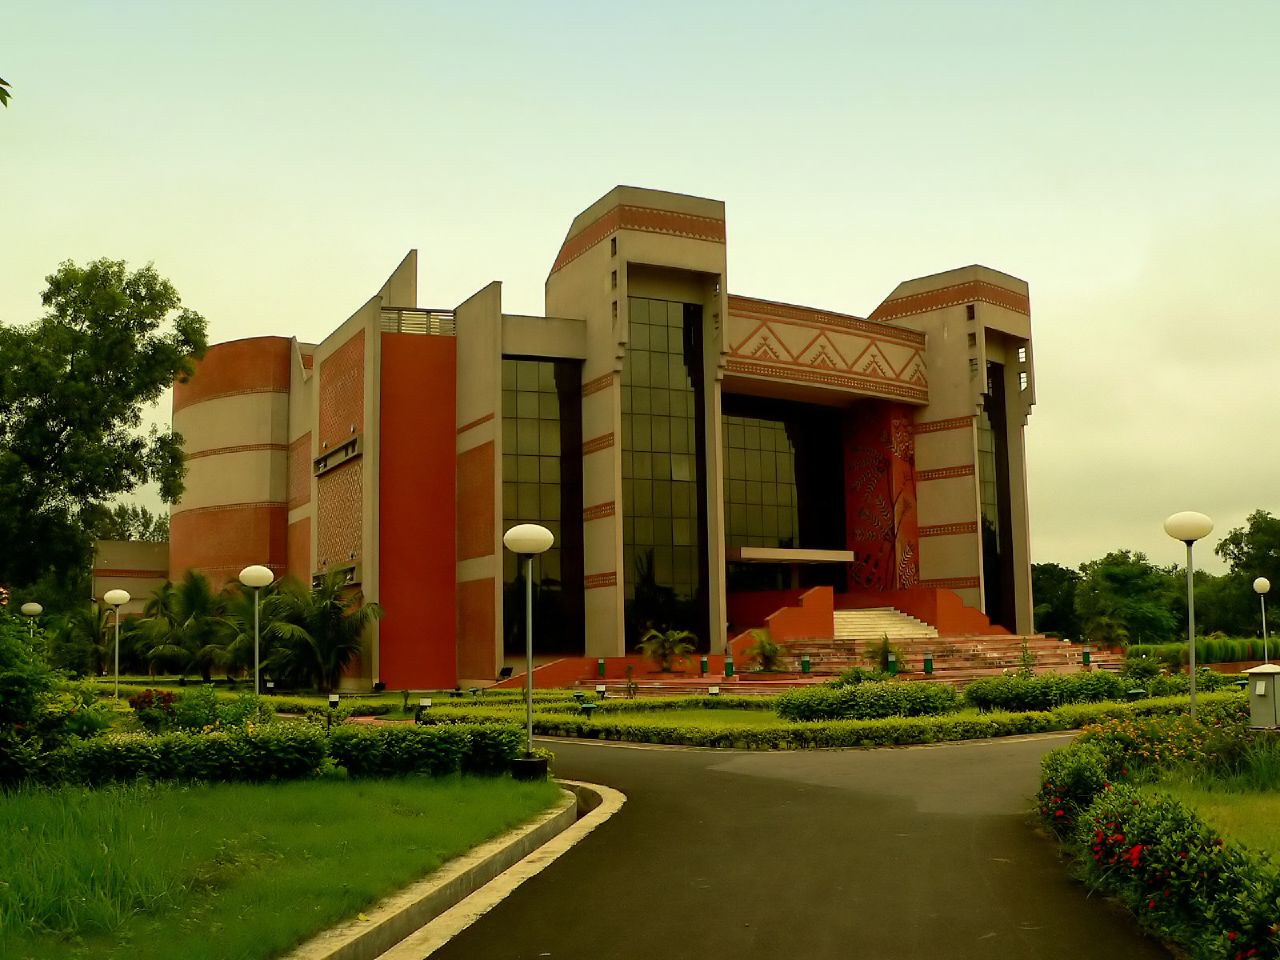 IIM Calcutta has a beautiful campus too